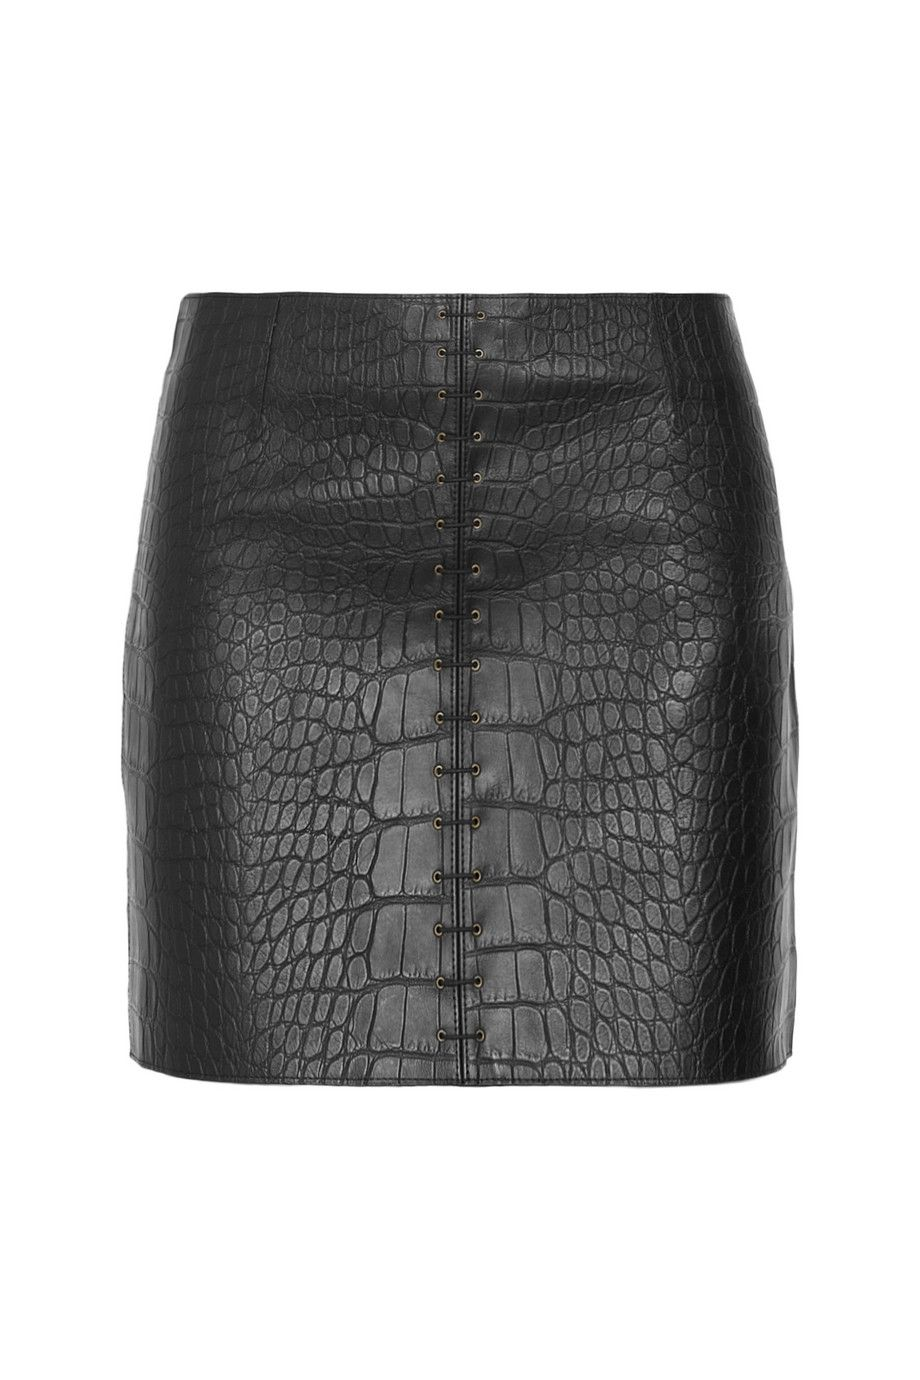 Croc Leather Skirt